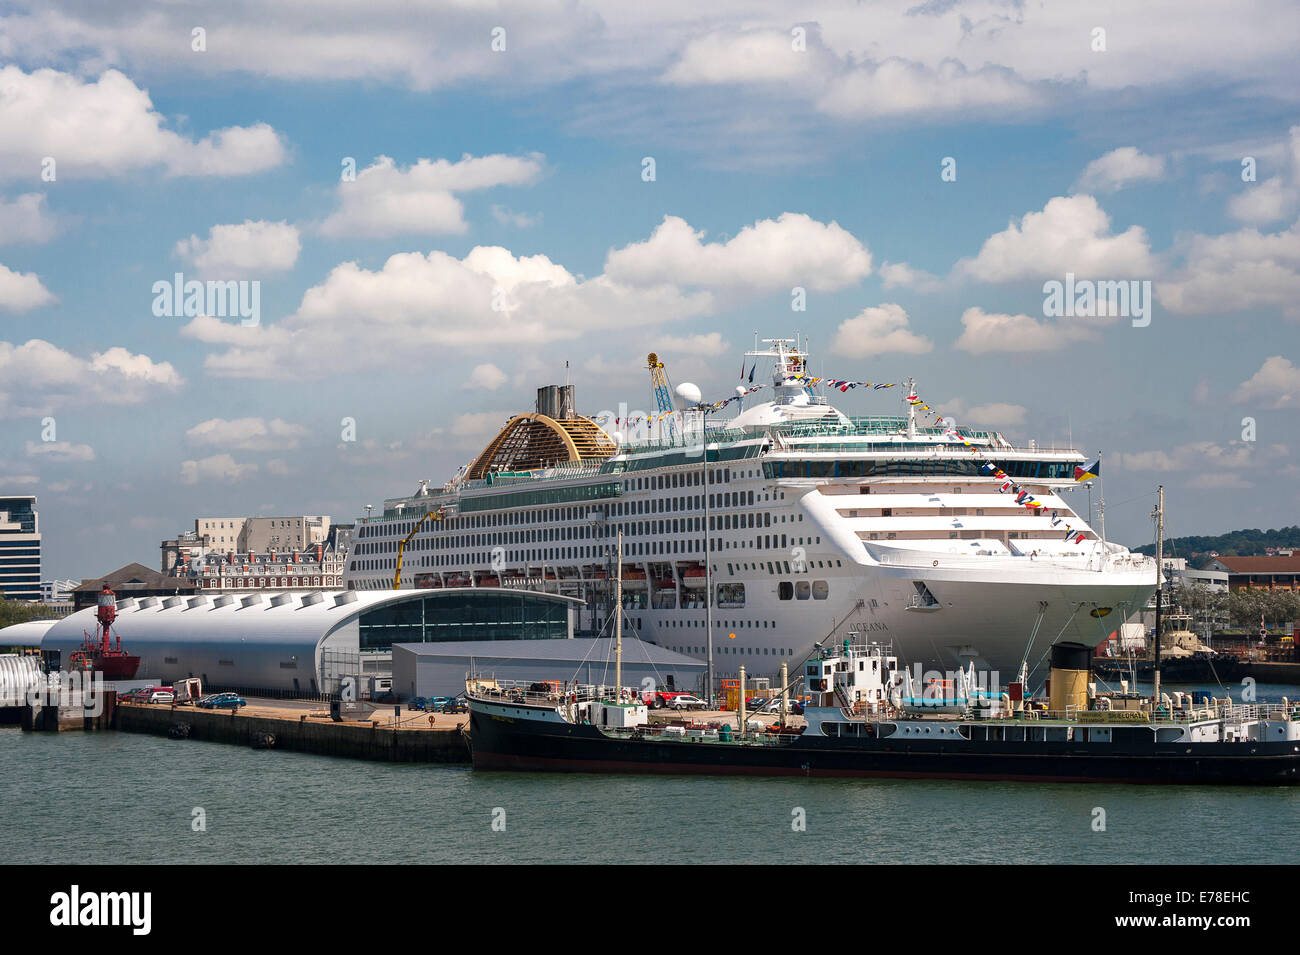 P&O's cruise ship Oceana in port at Southampton, England. Stock Photo